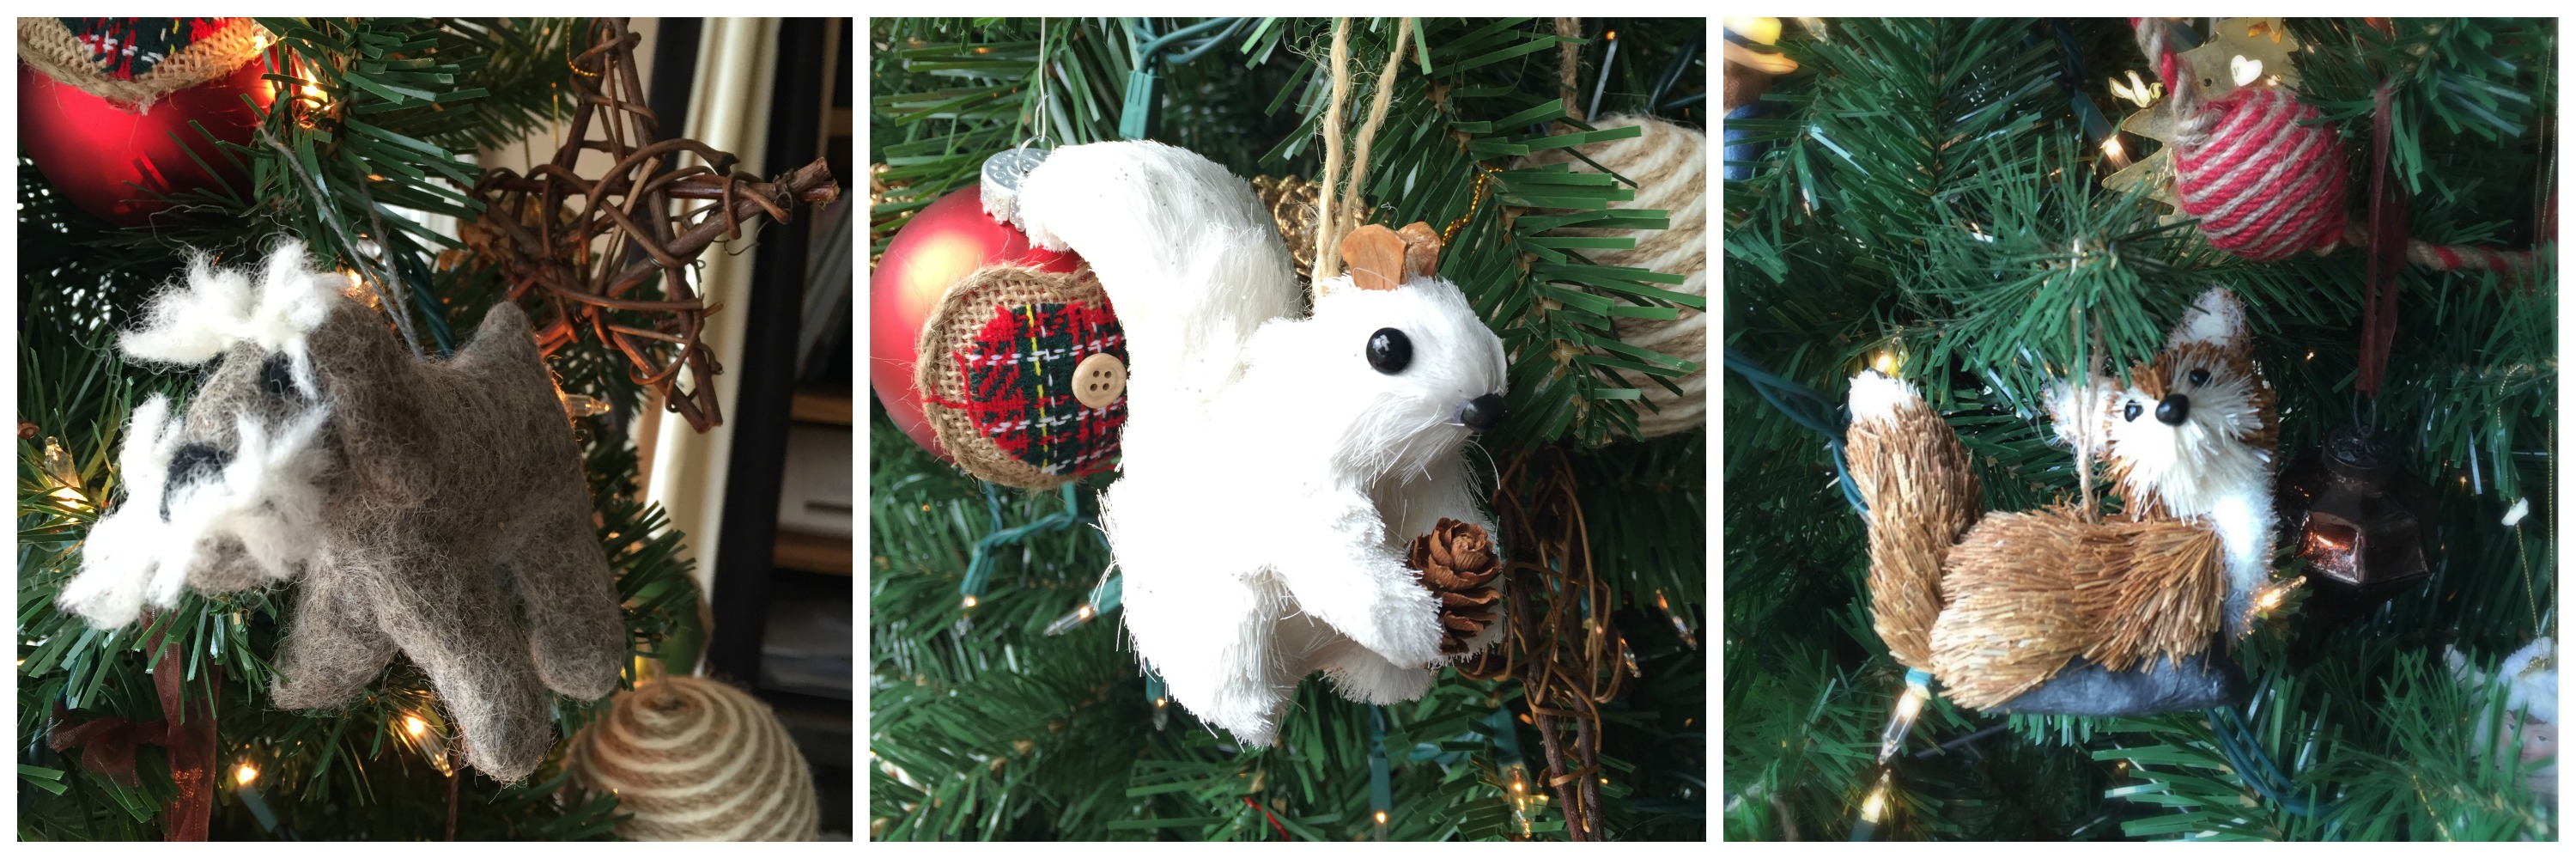 Woodland Ornaments by www.mylifefromhome.com